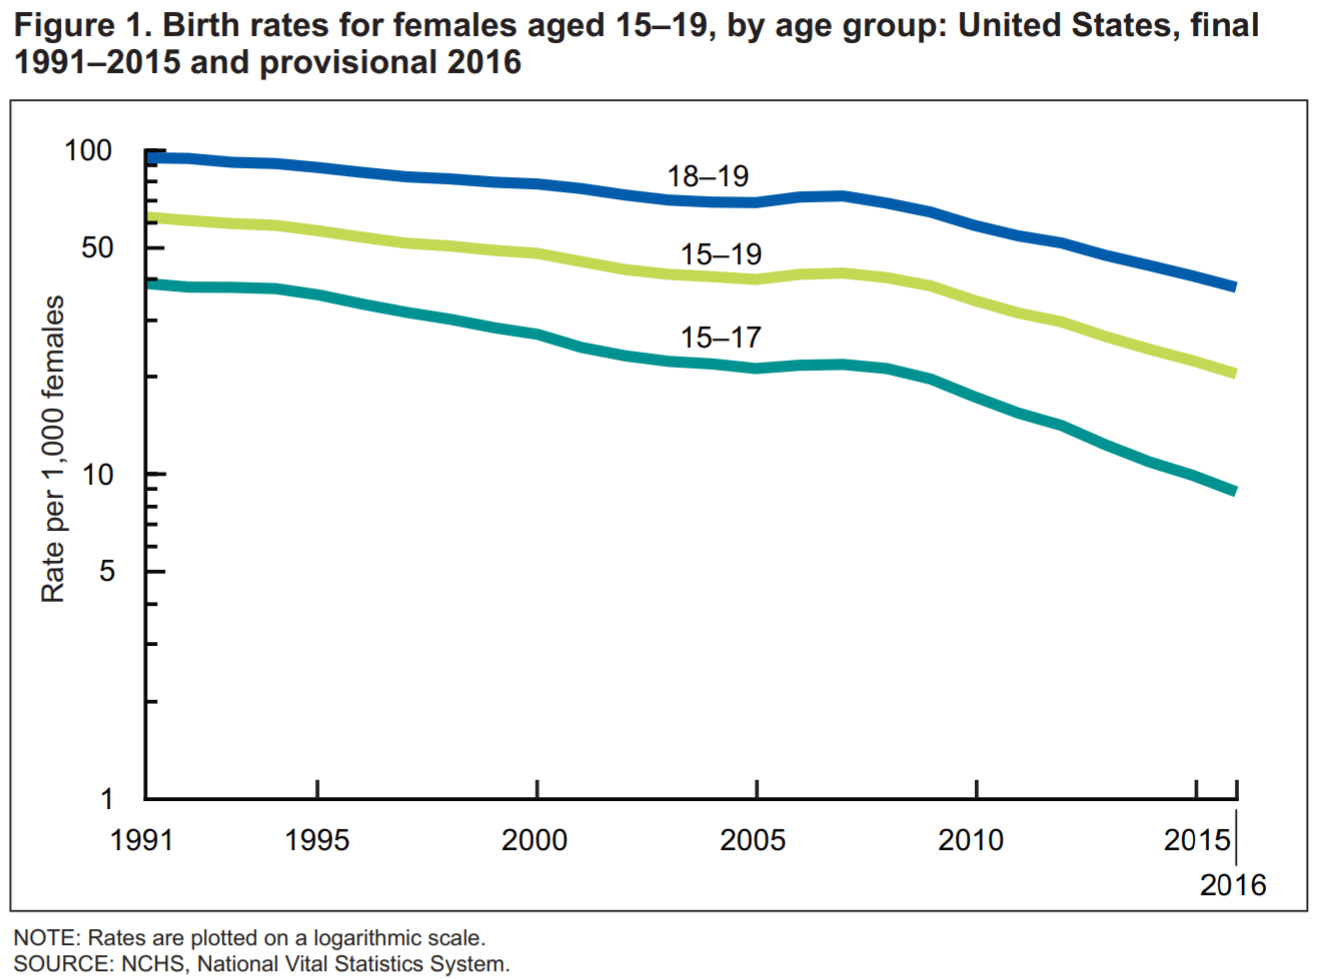 USA-birth-rates-females-aged-15-19-United-States-1991-2015